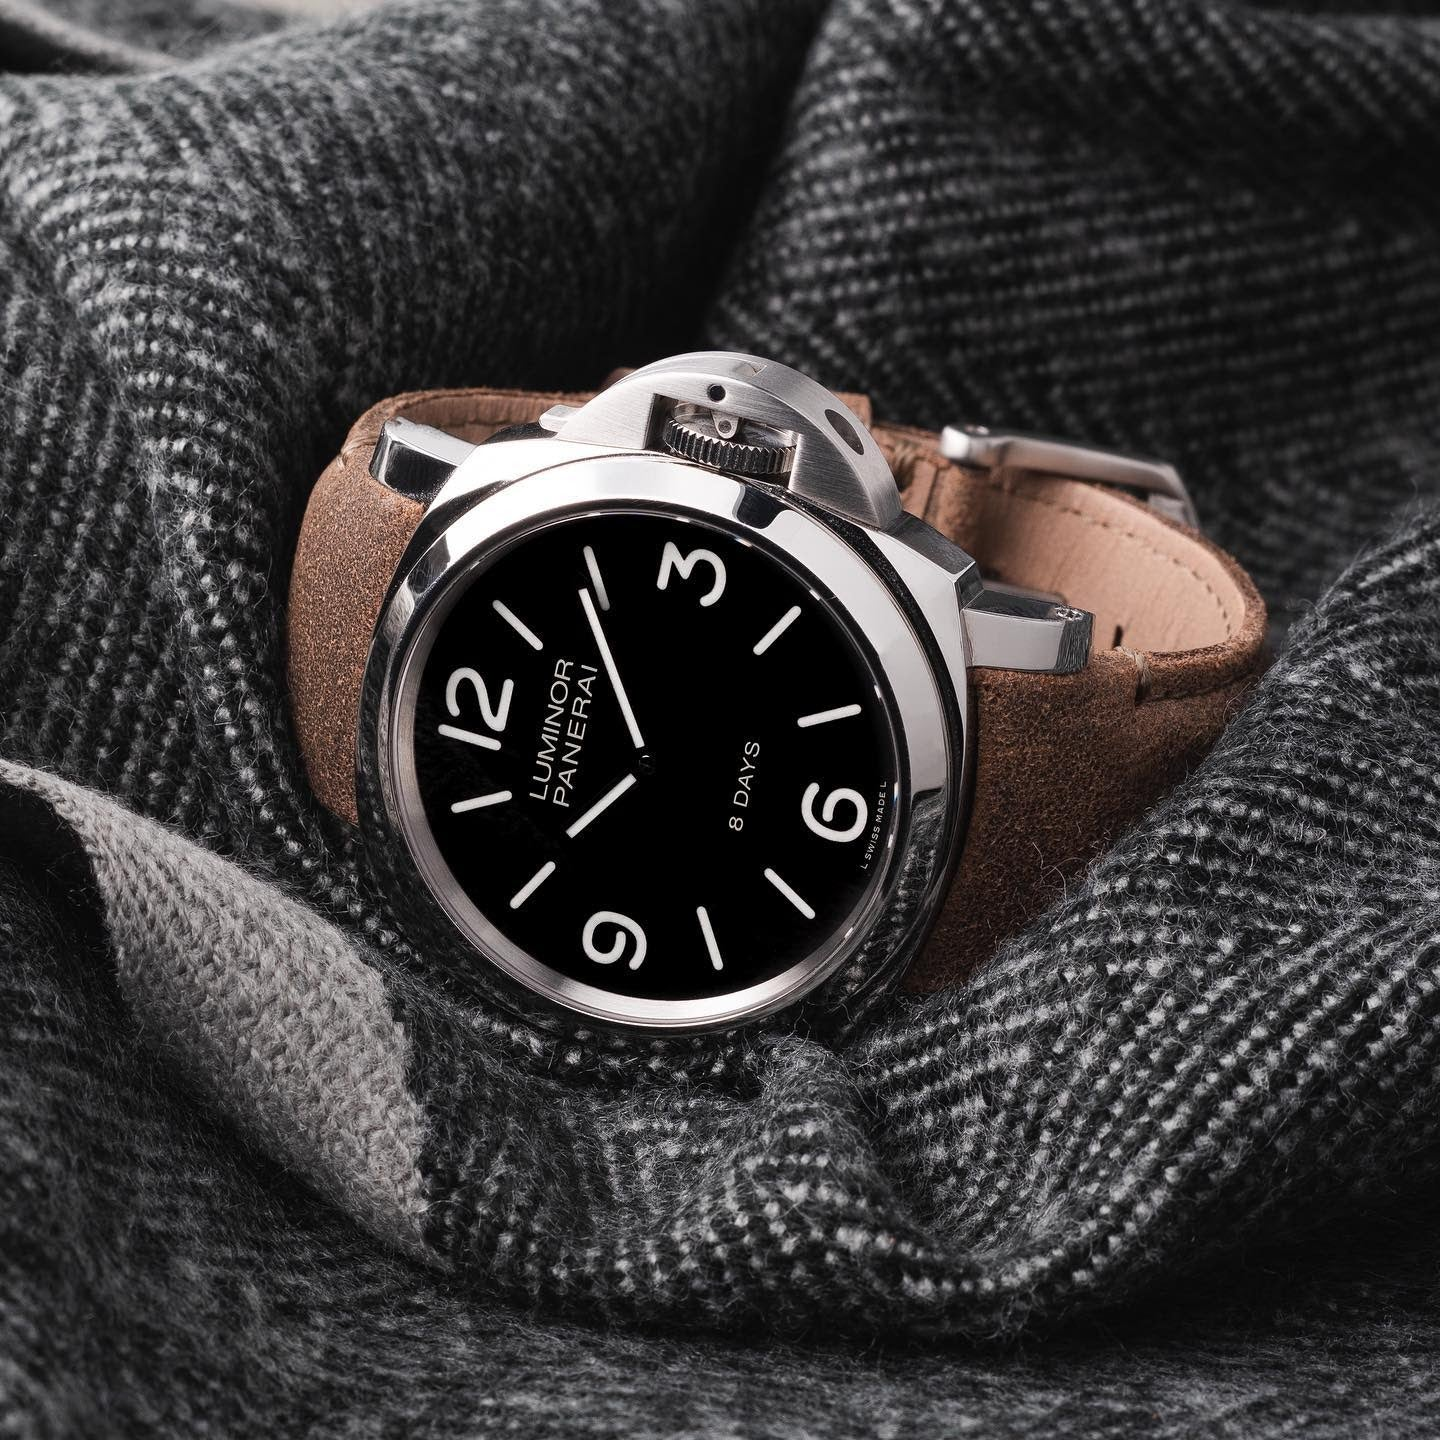 panerai on leather aftermarket strap